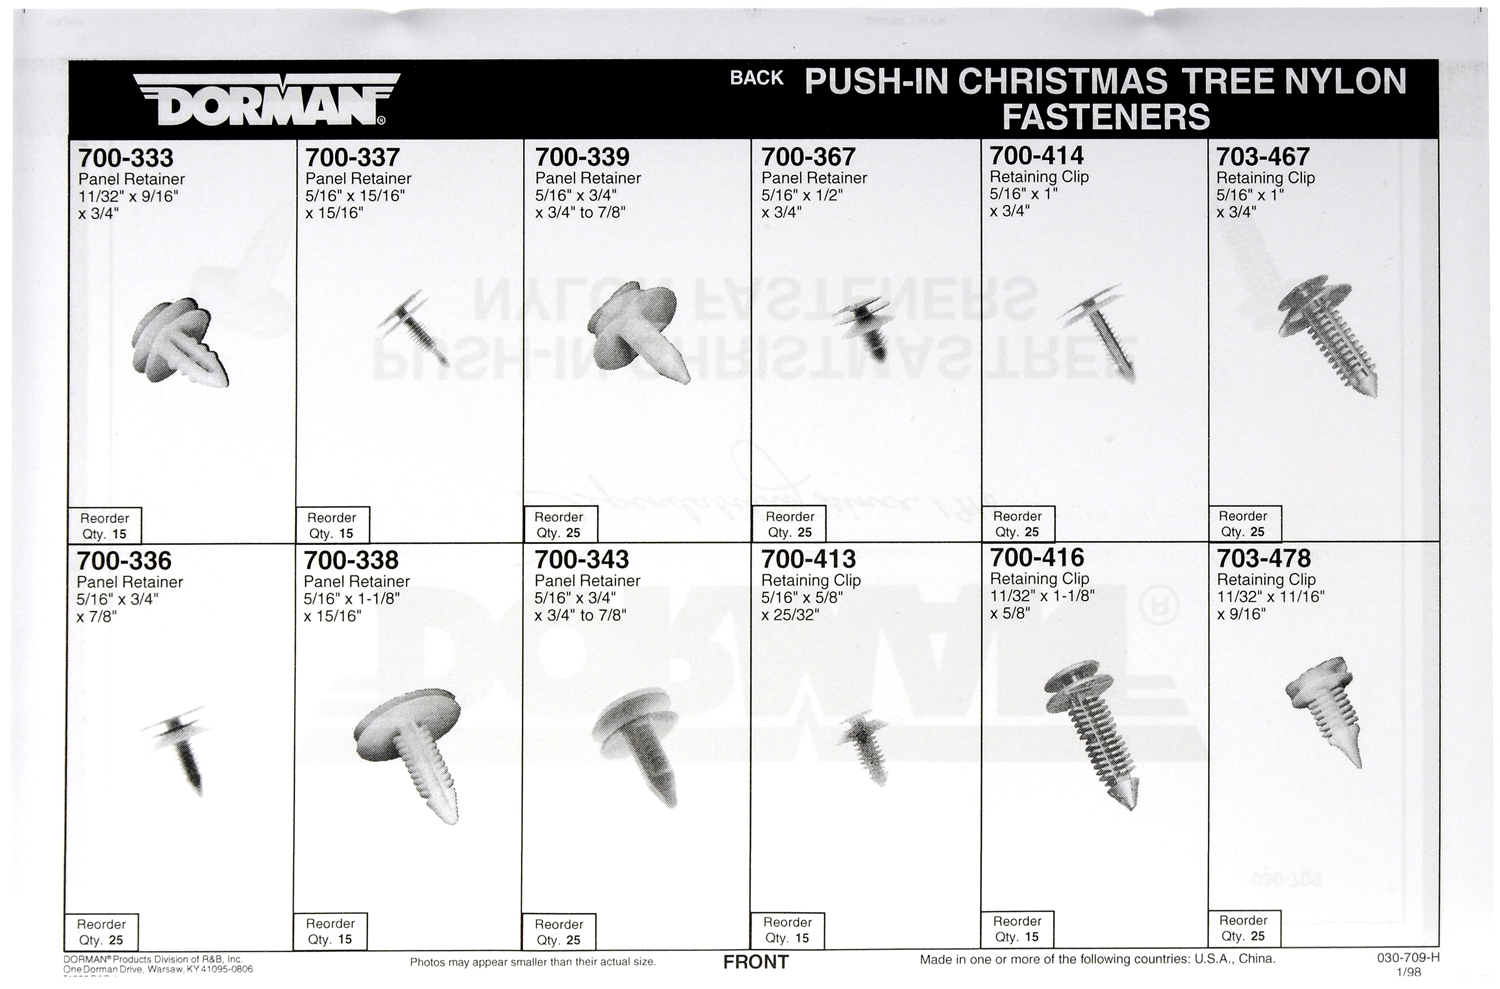 030-709 Dorman (TECHoice) Fastener Assortment With 5 Of Each Part